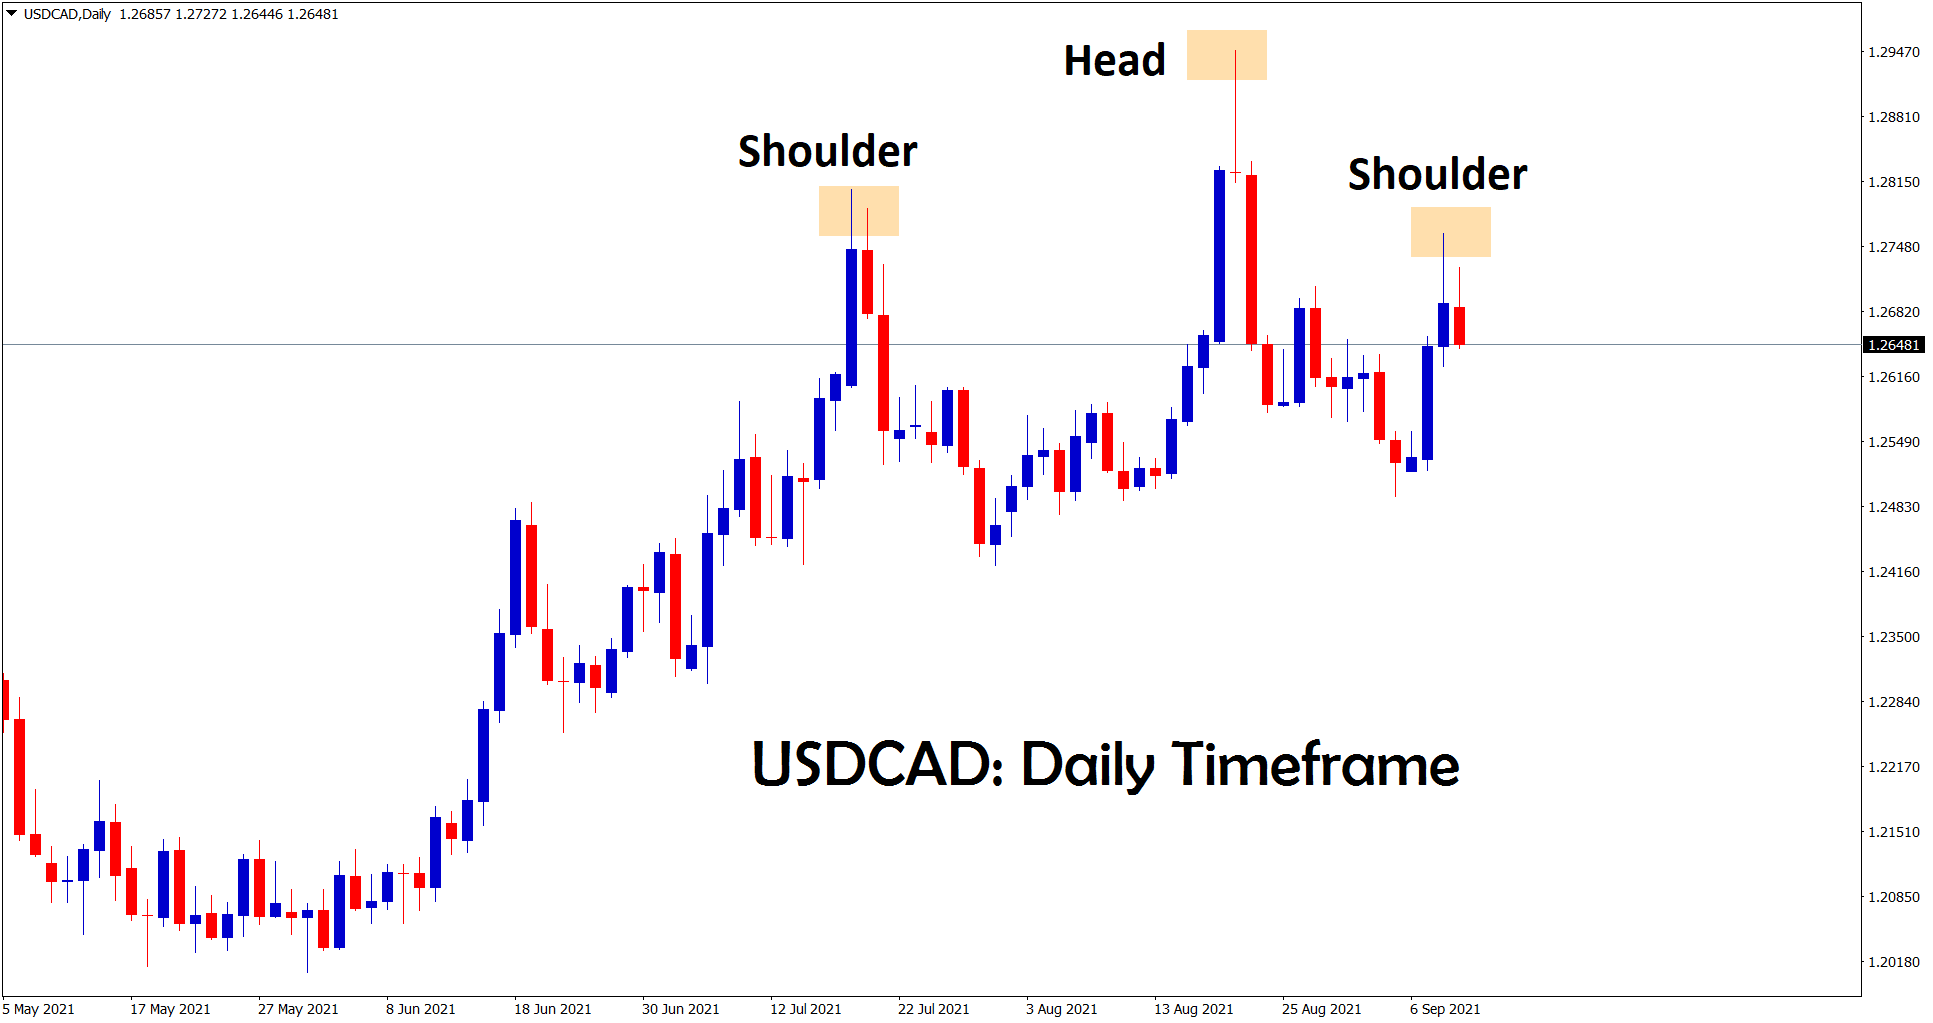 USDCAD is trying to form the Head and Shoulder pattern in the daily chart